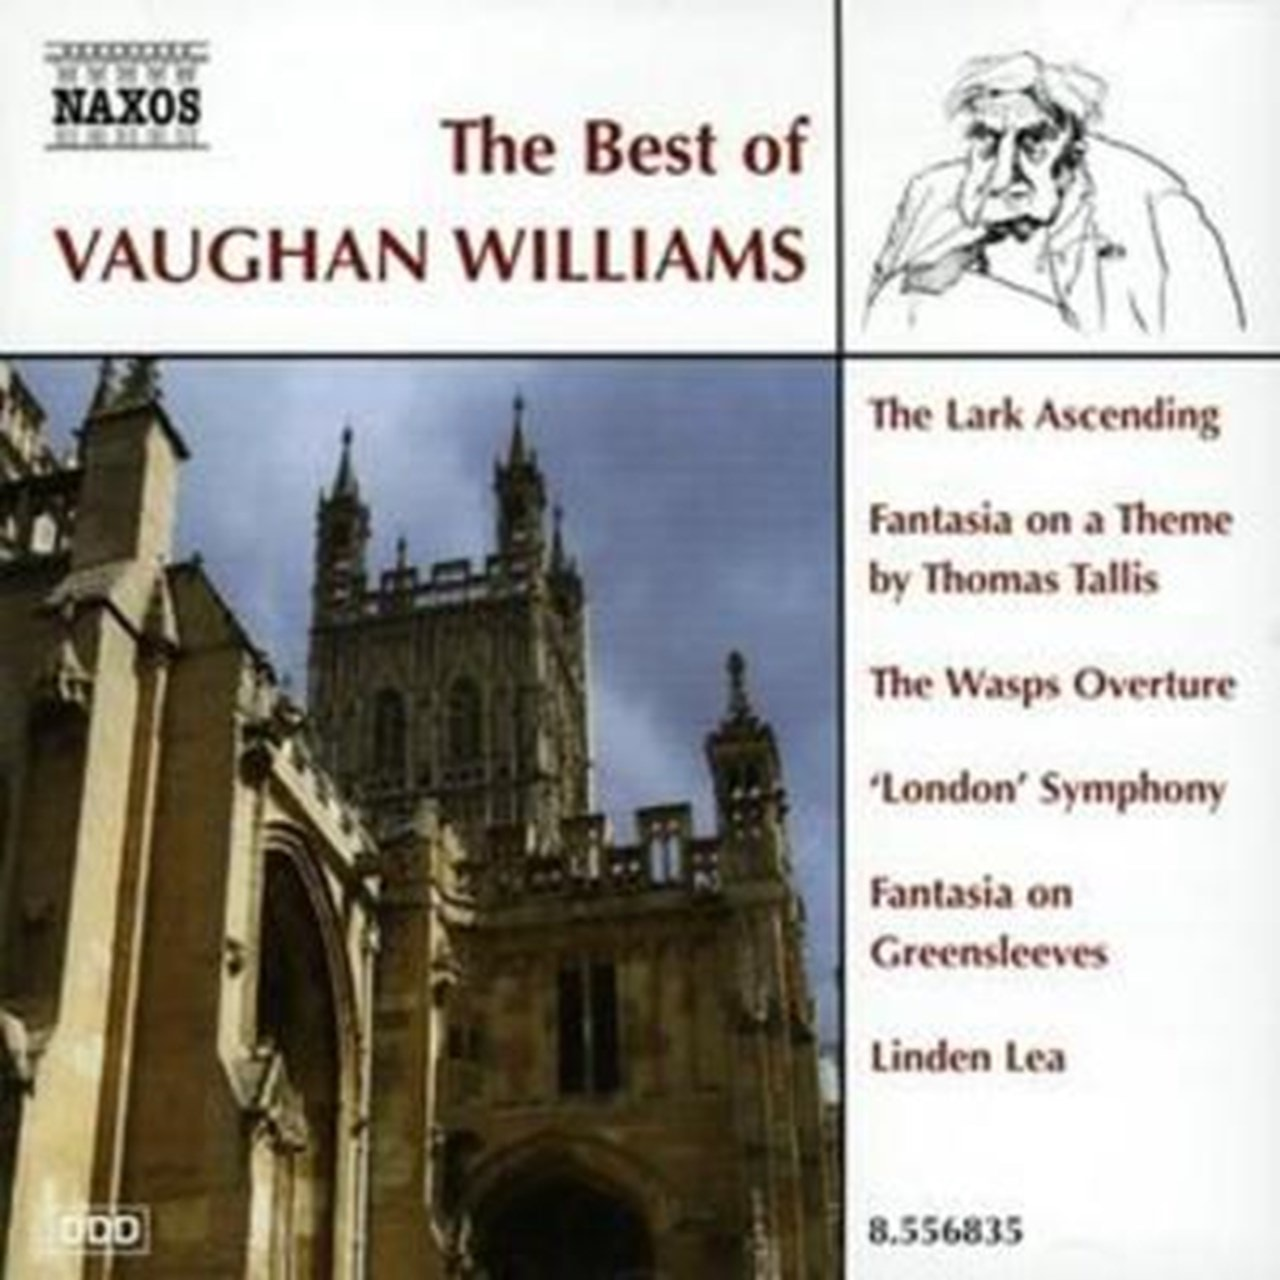 The Best of Vaughan Williams - 1